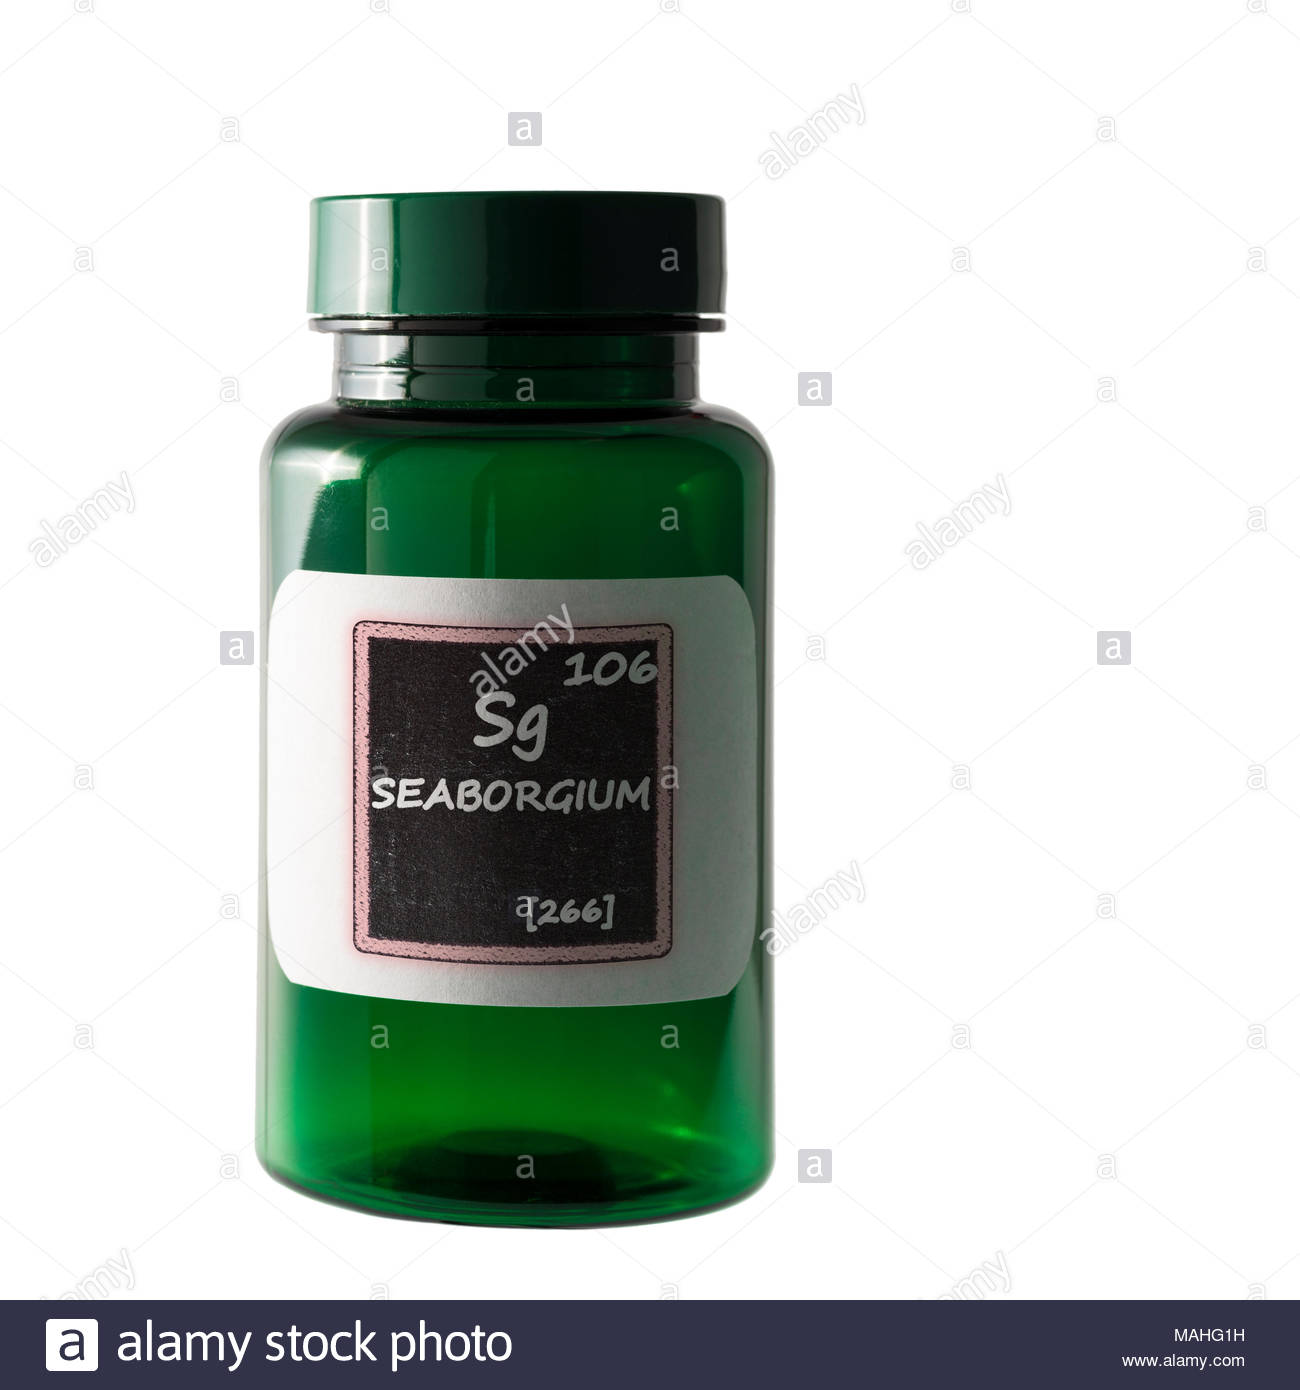 Seaborgium Periodic Table Details Shown On Bottle Label Stock Photo